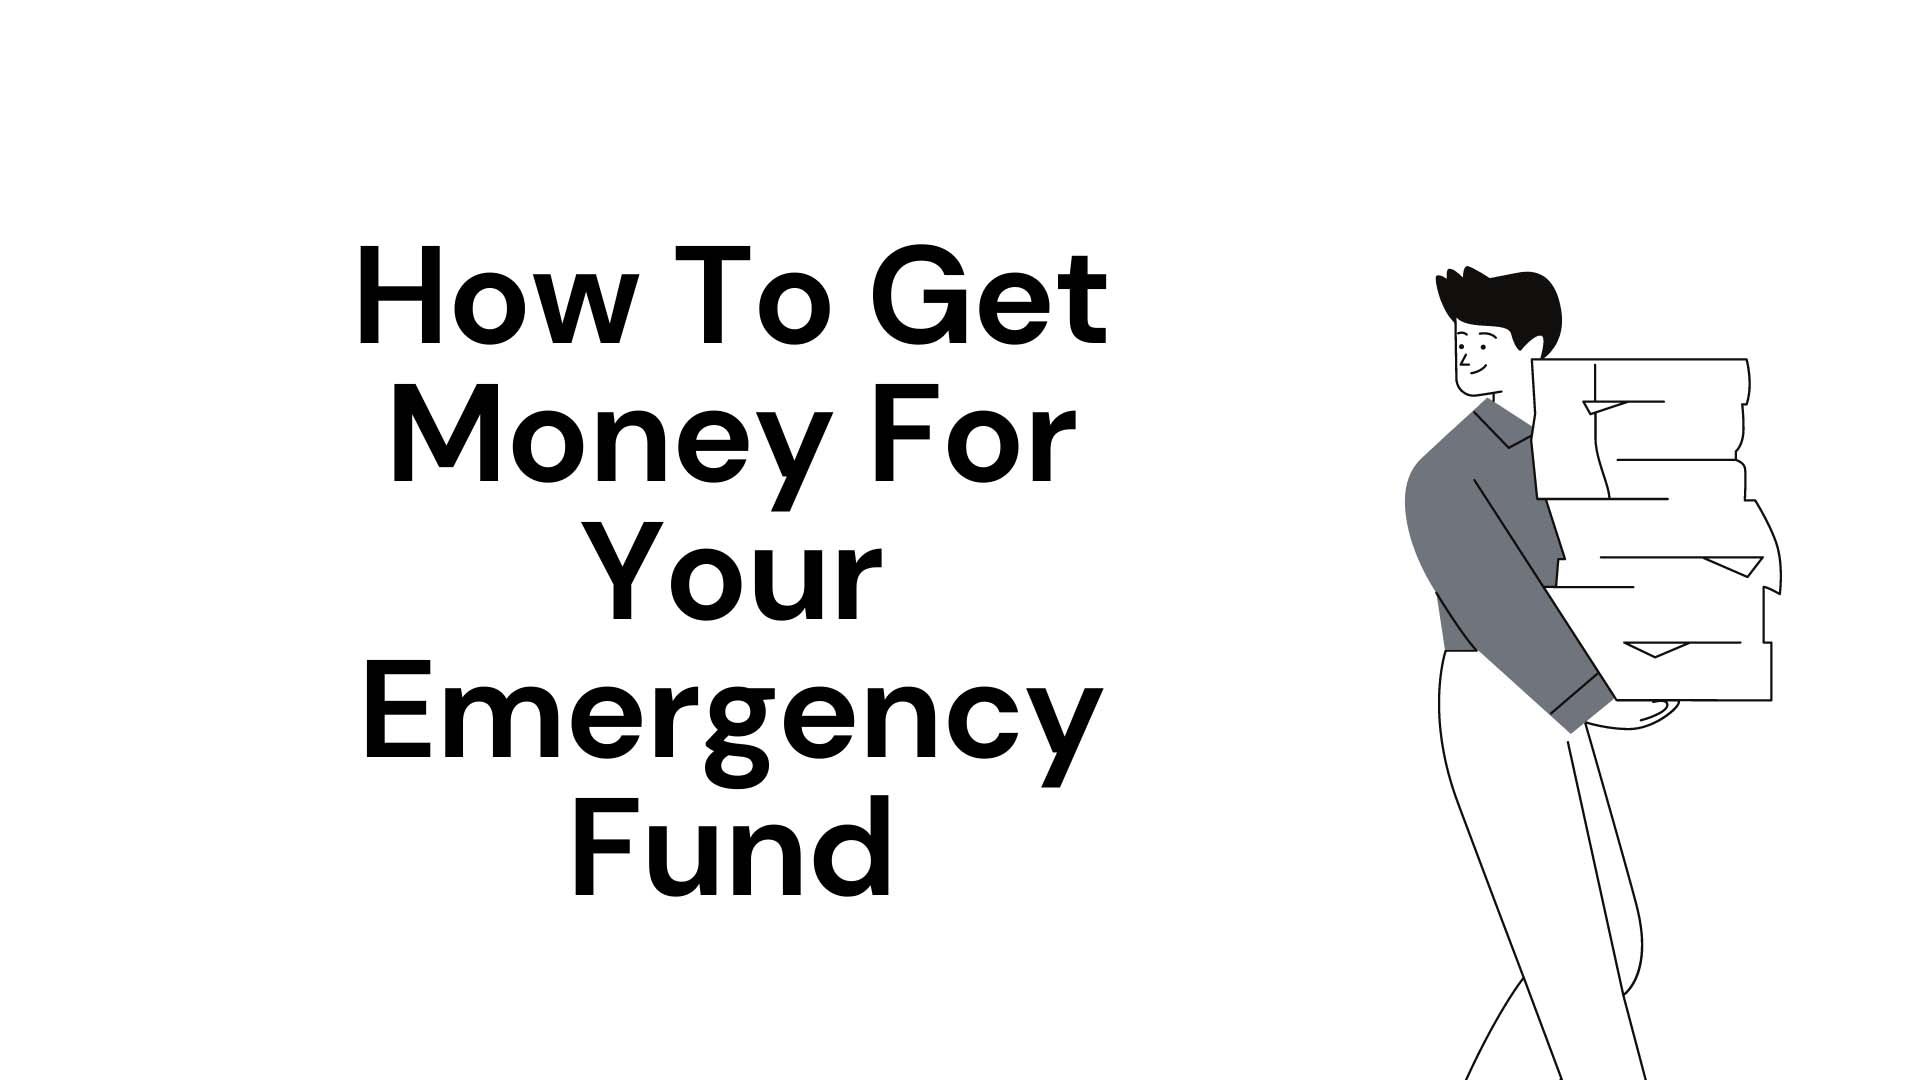 How To Get Money For Your Emergency Fund